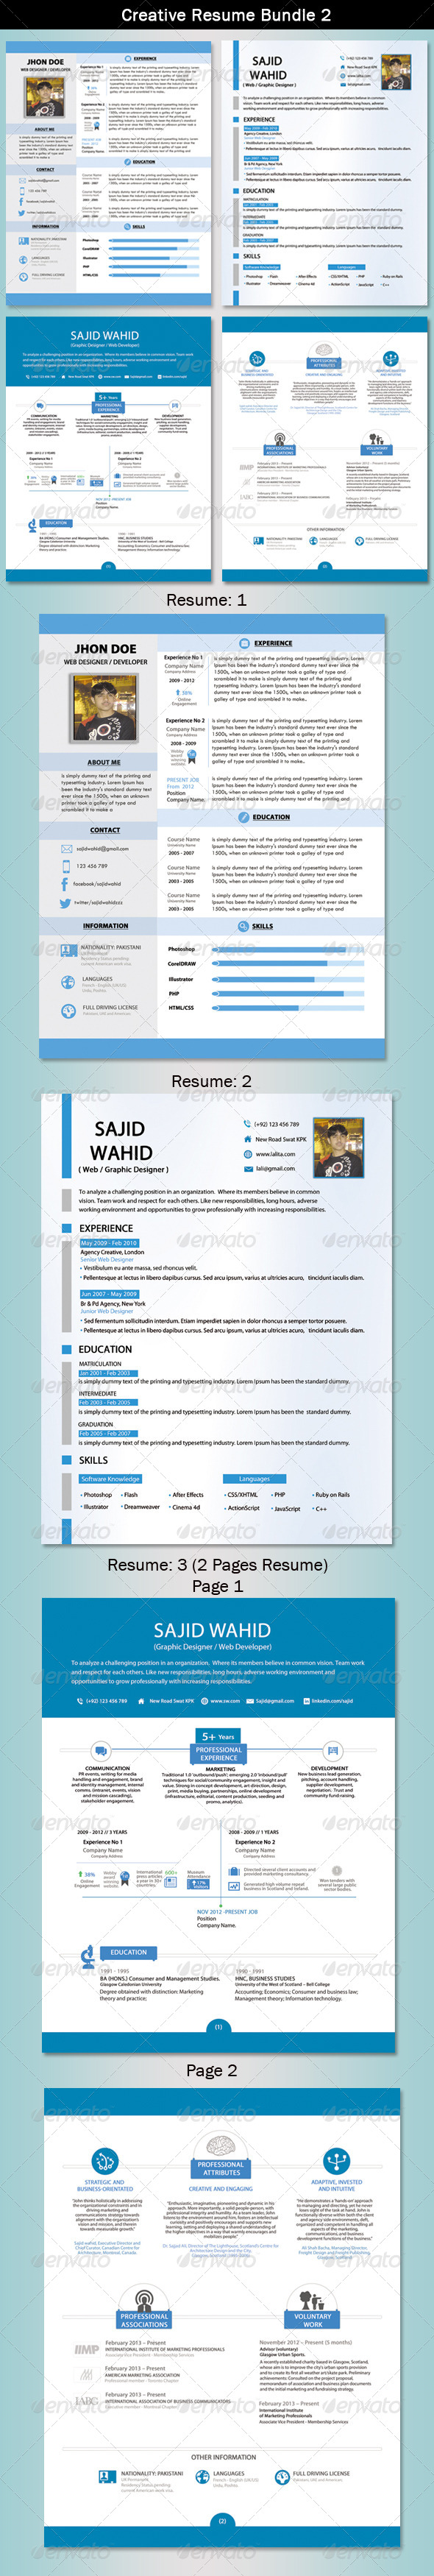 Resume Bundle 2 - Print Templates